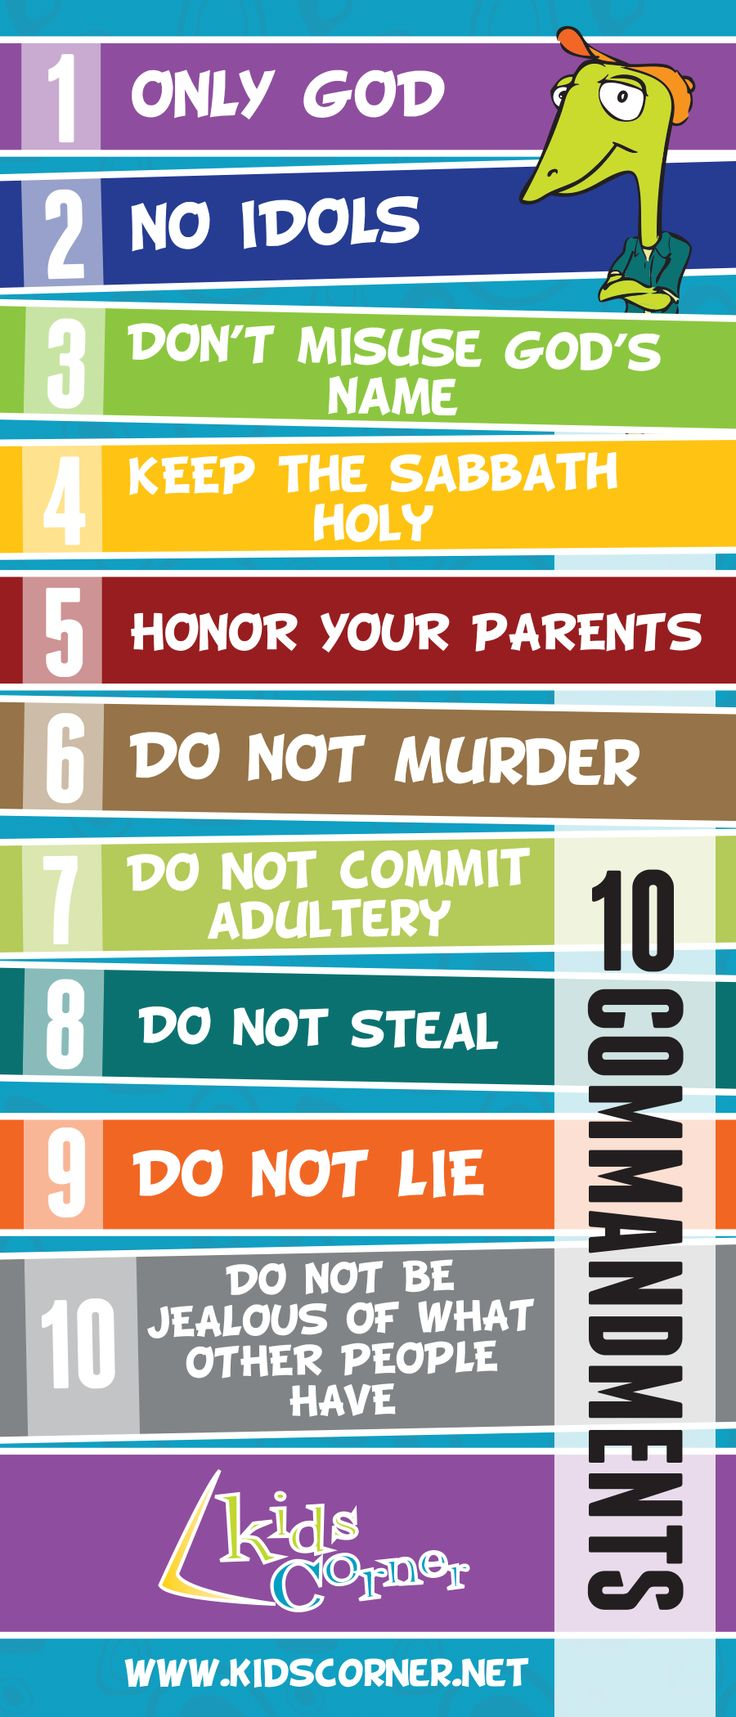 10 Commandments Bookmark We've designed a special Kids Corner 10 Commandments Bookmark. This bookmark will be a handy reminder of God's rules for living for you and for your family.